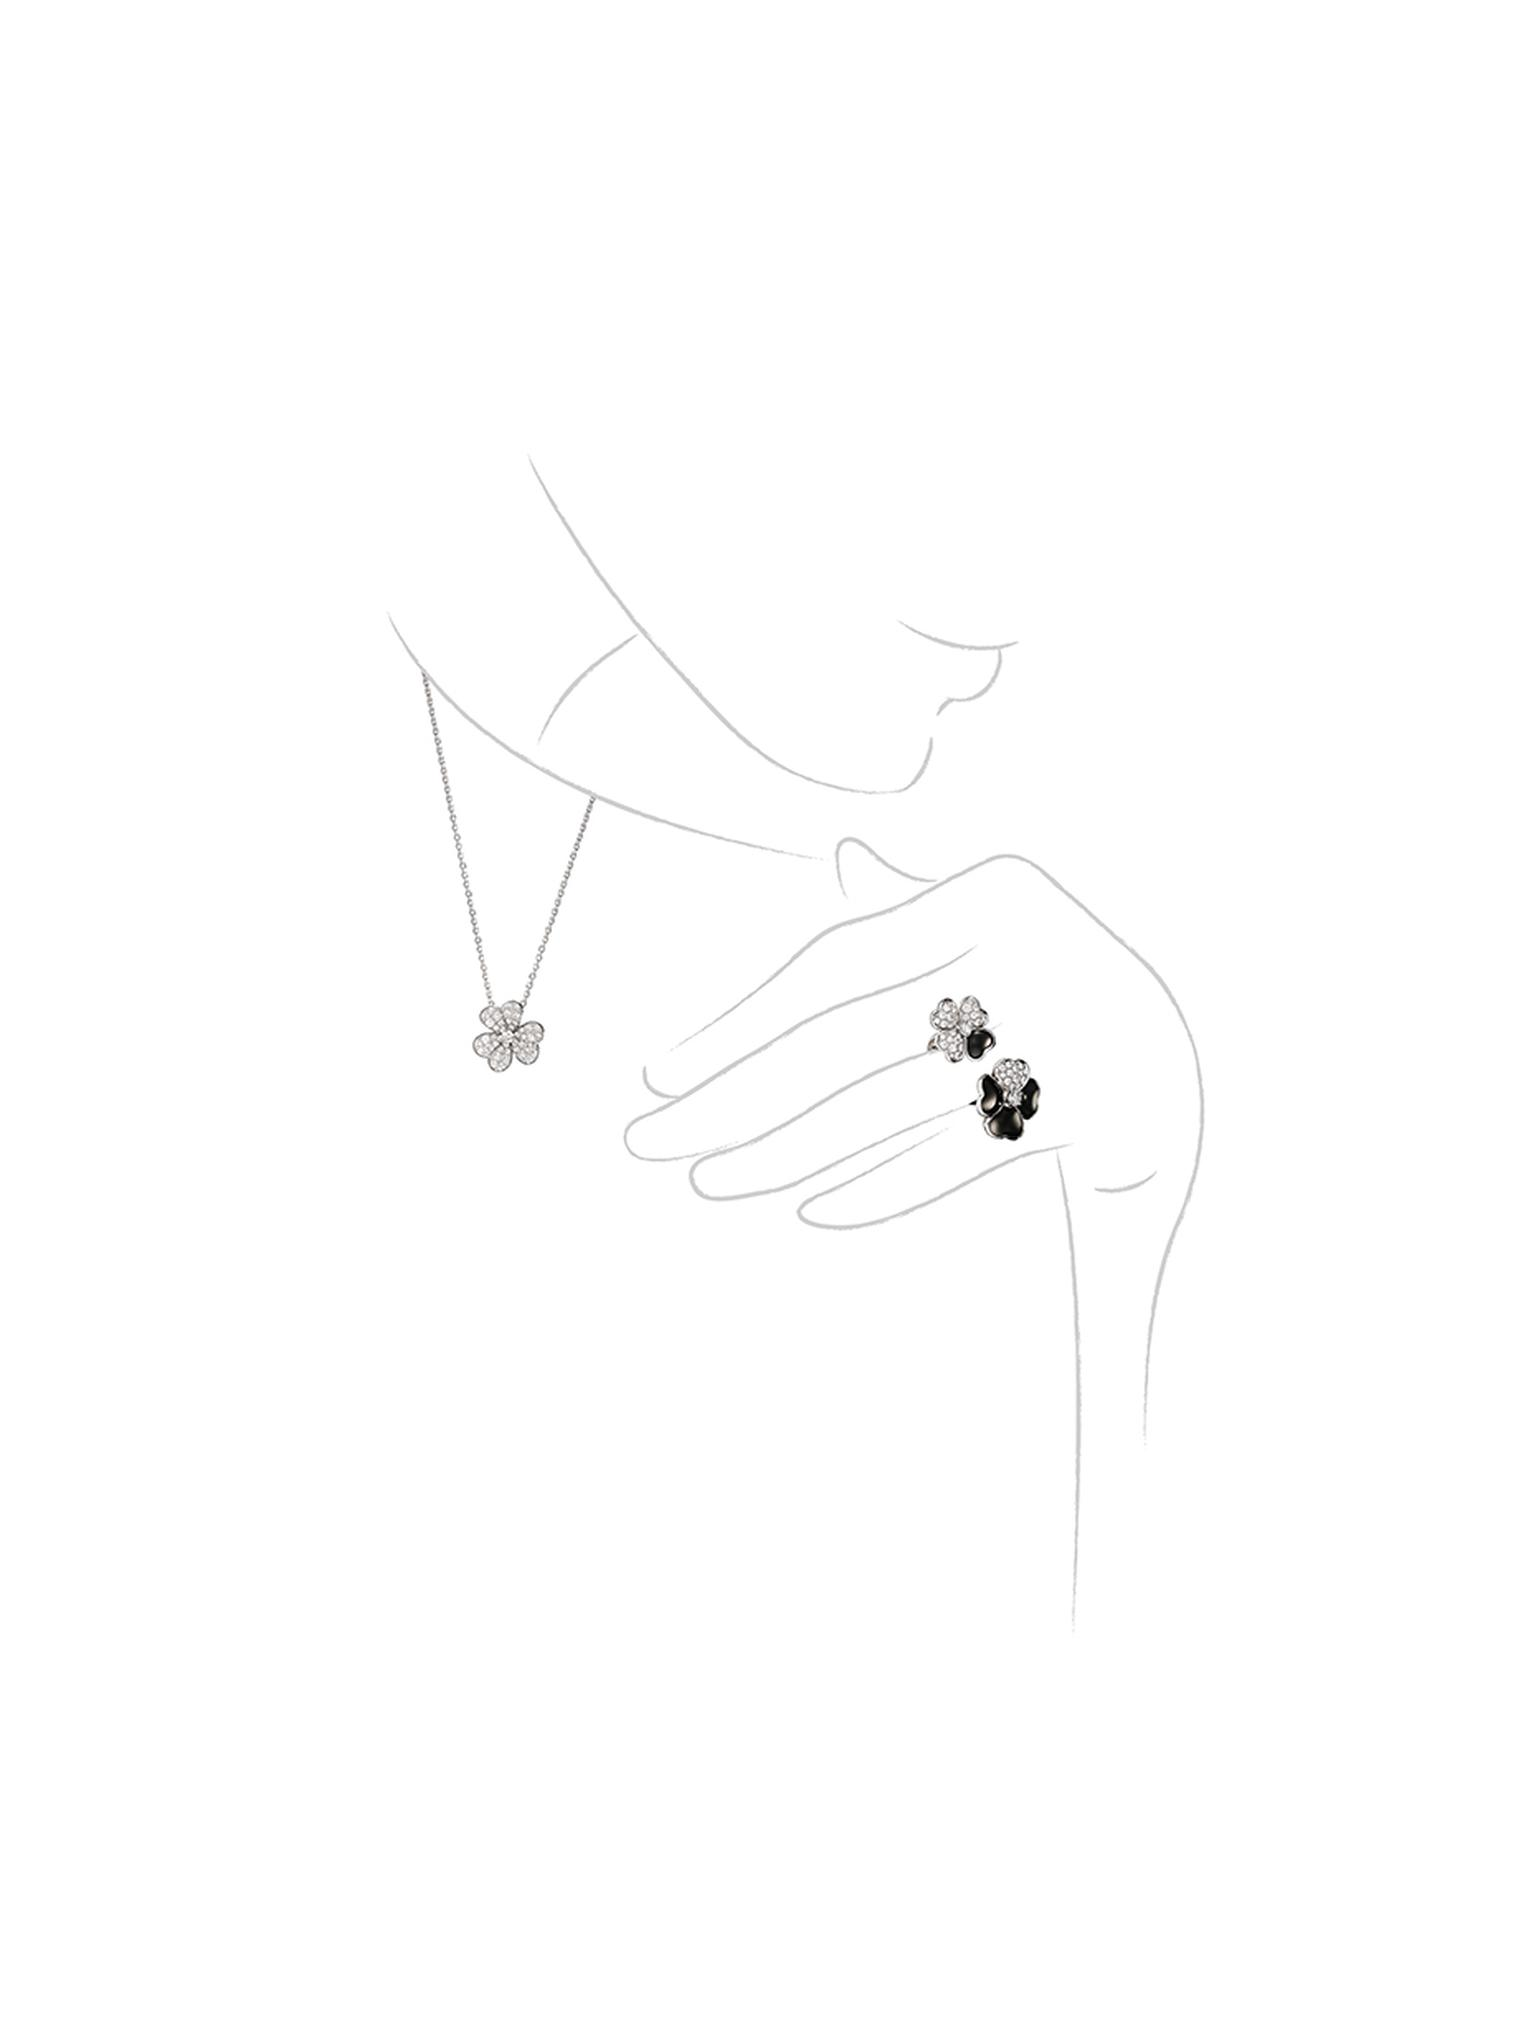 Van Cleef & Arpels Cosmos Between the Finger onyx and diamond ring and Cosmos diamond necklace.